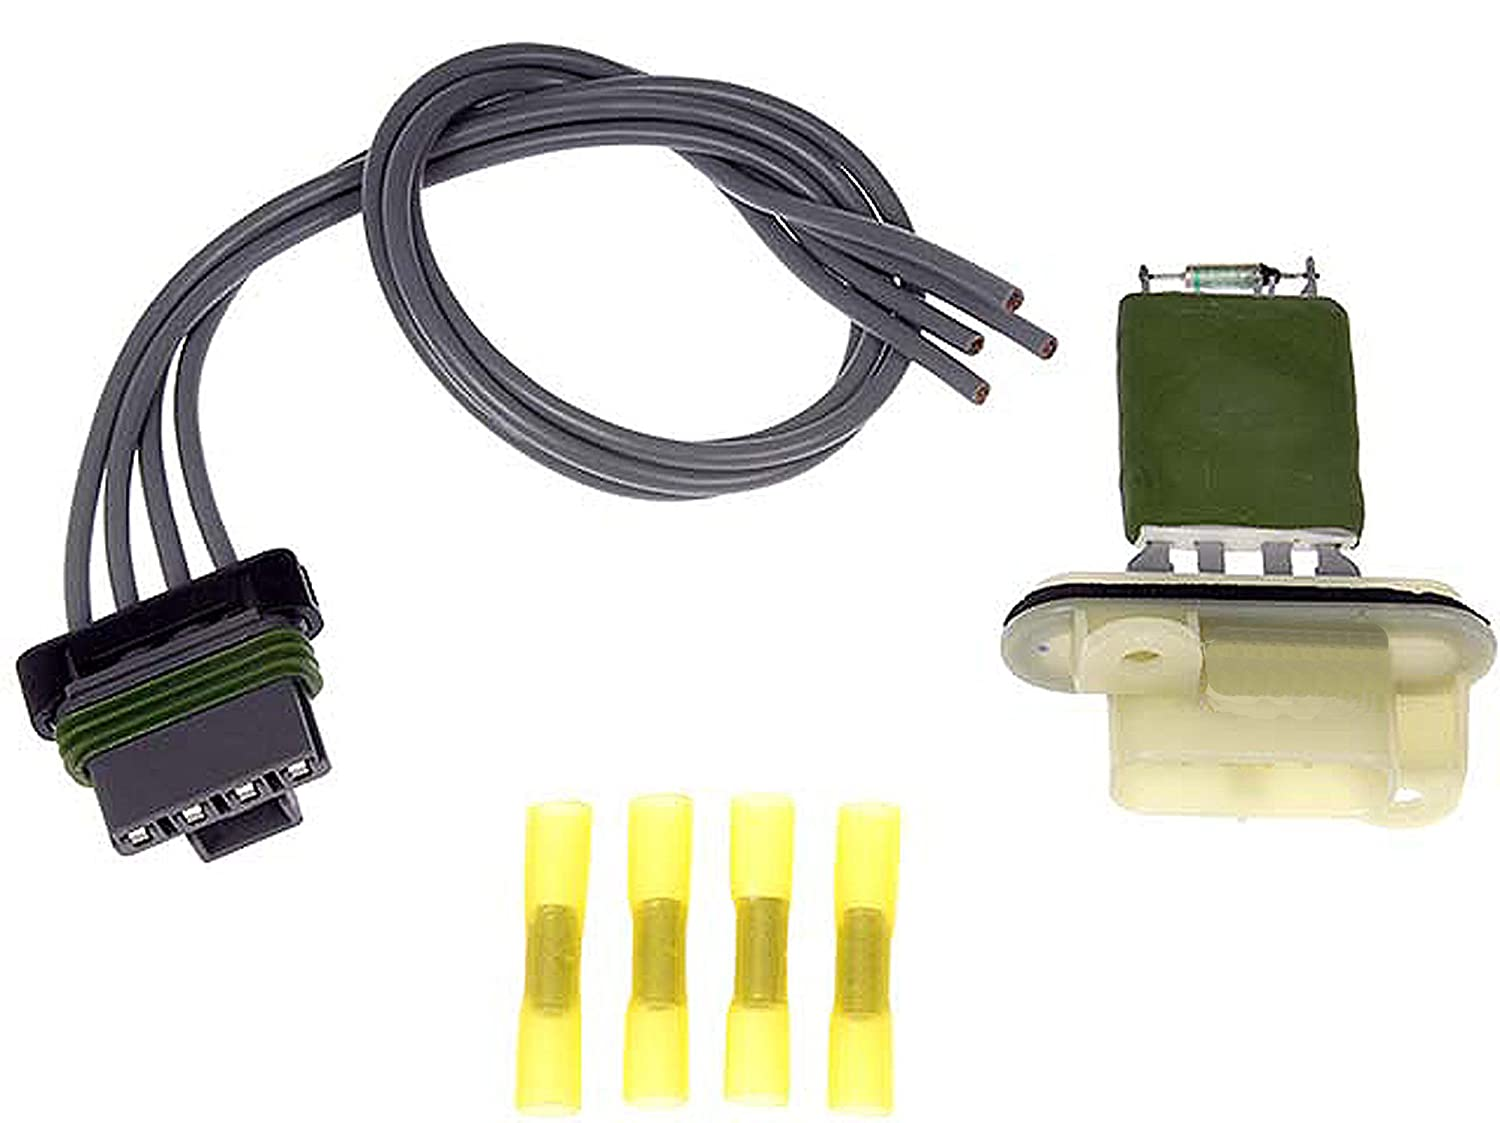 APDTY 084545 Blower Motor Switch Resistor Kit w/ Wiring Harness Pigtail  Connector Fits 2004-